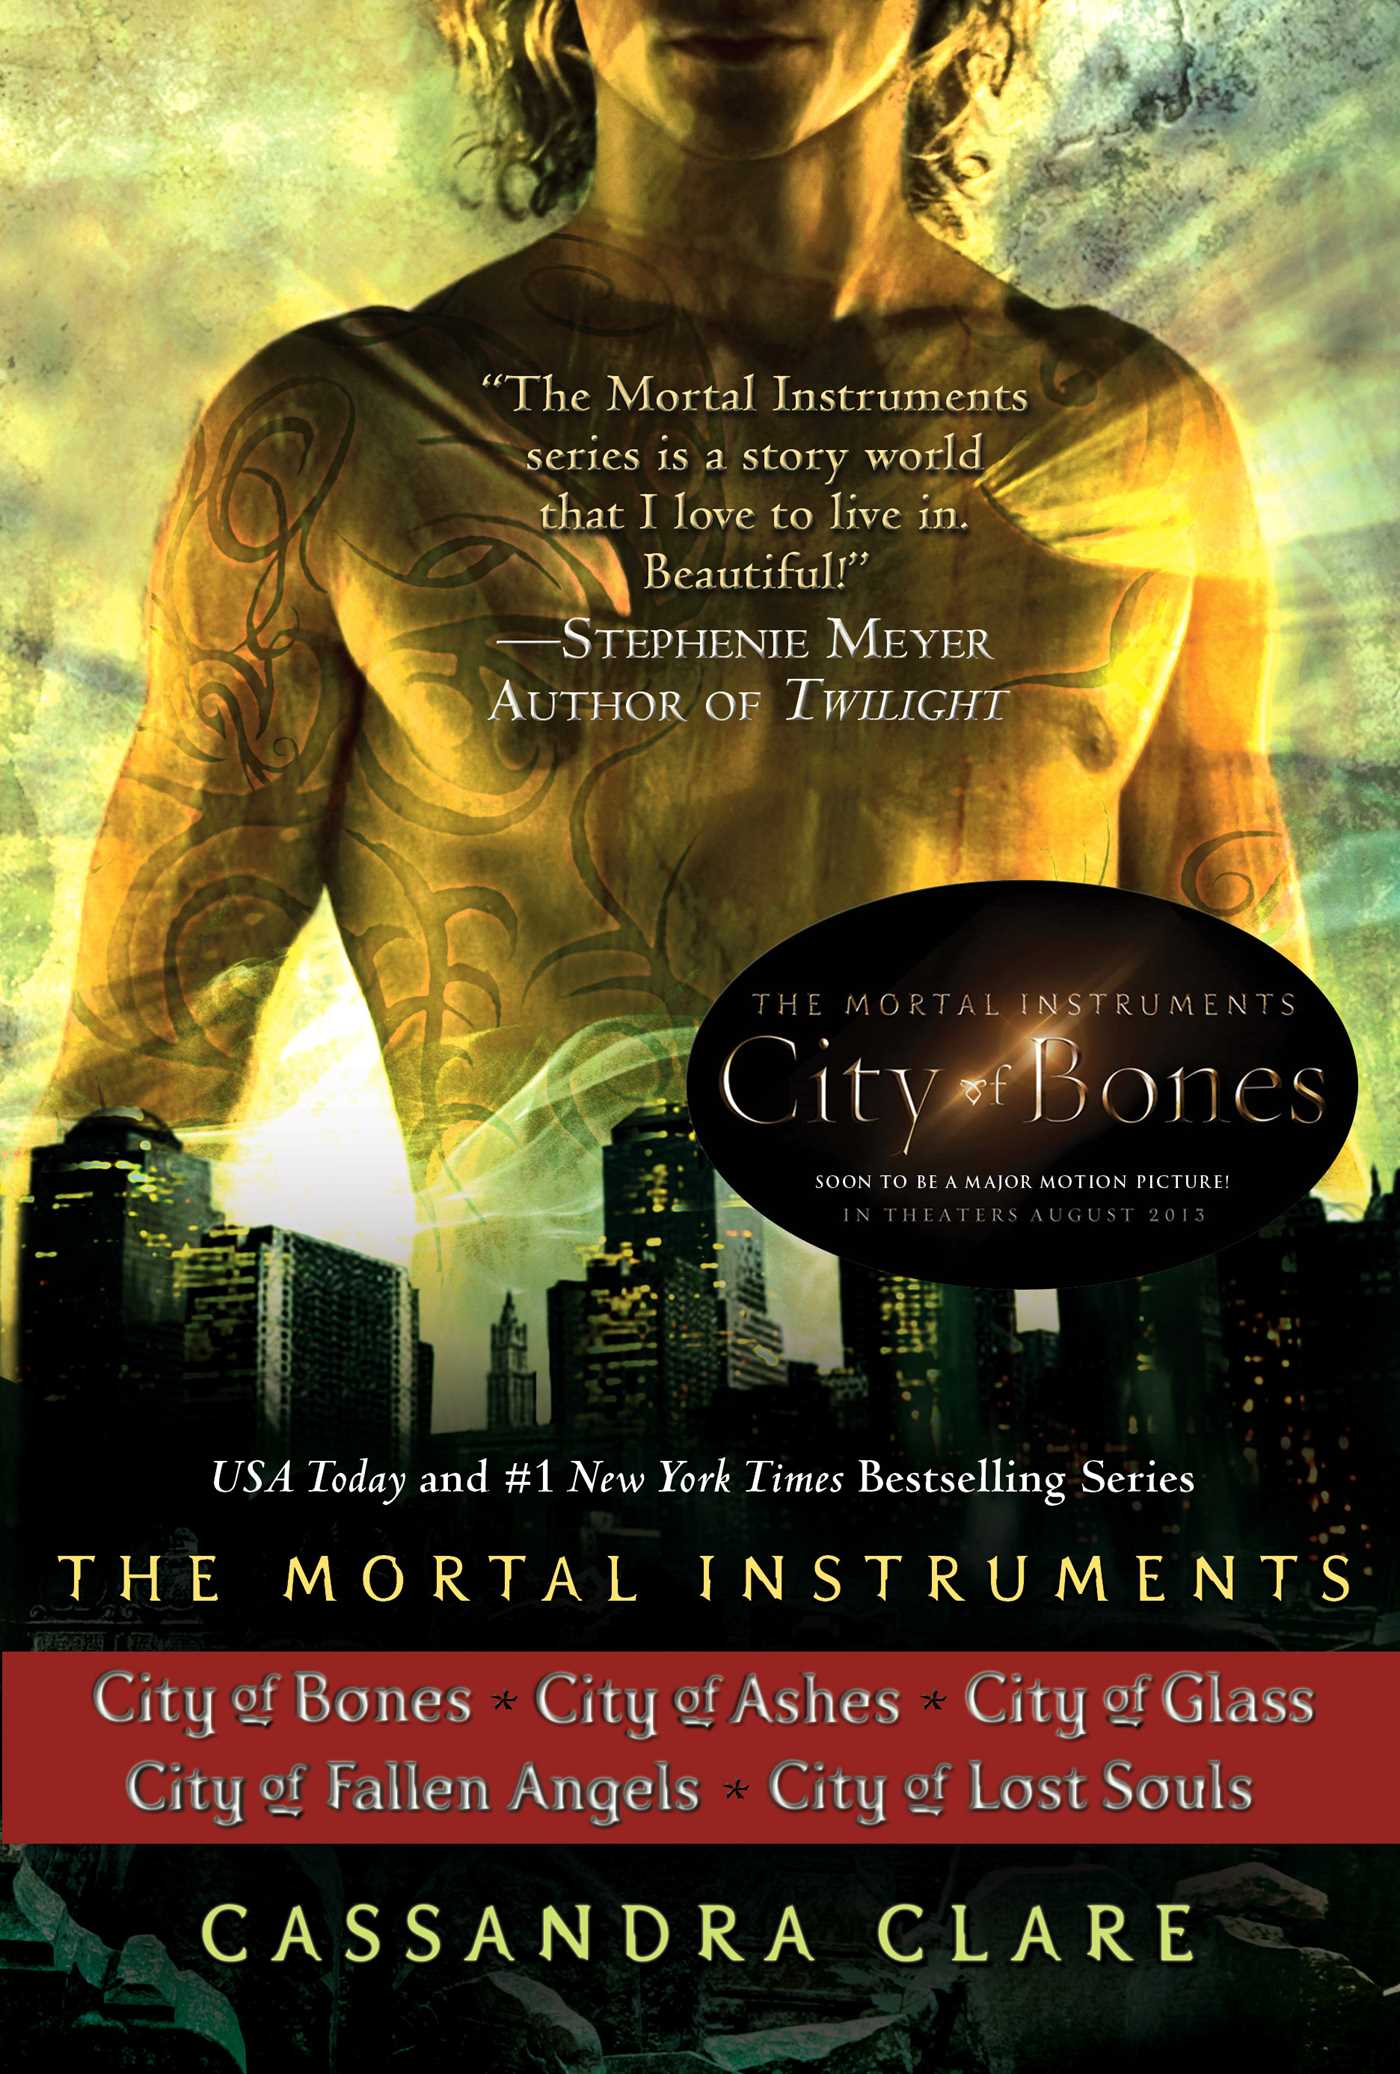 Cassandra clare the mortal instruments series 5 books 9781442481015 hr